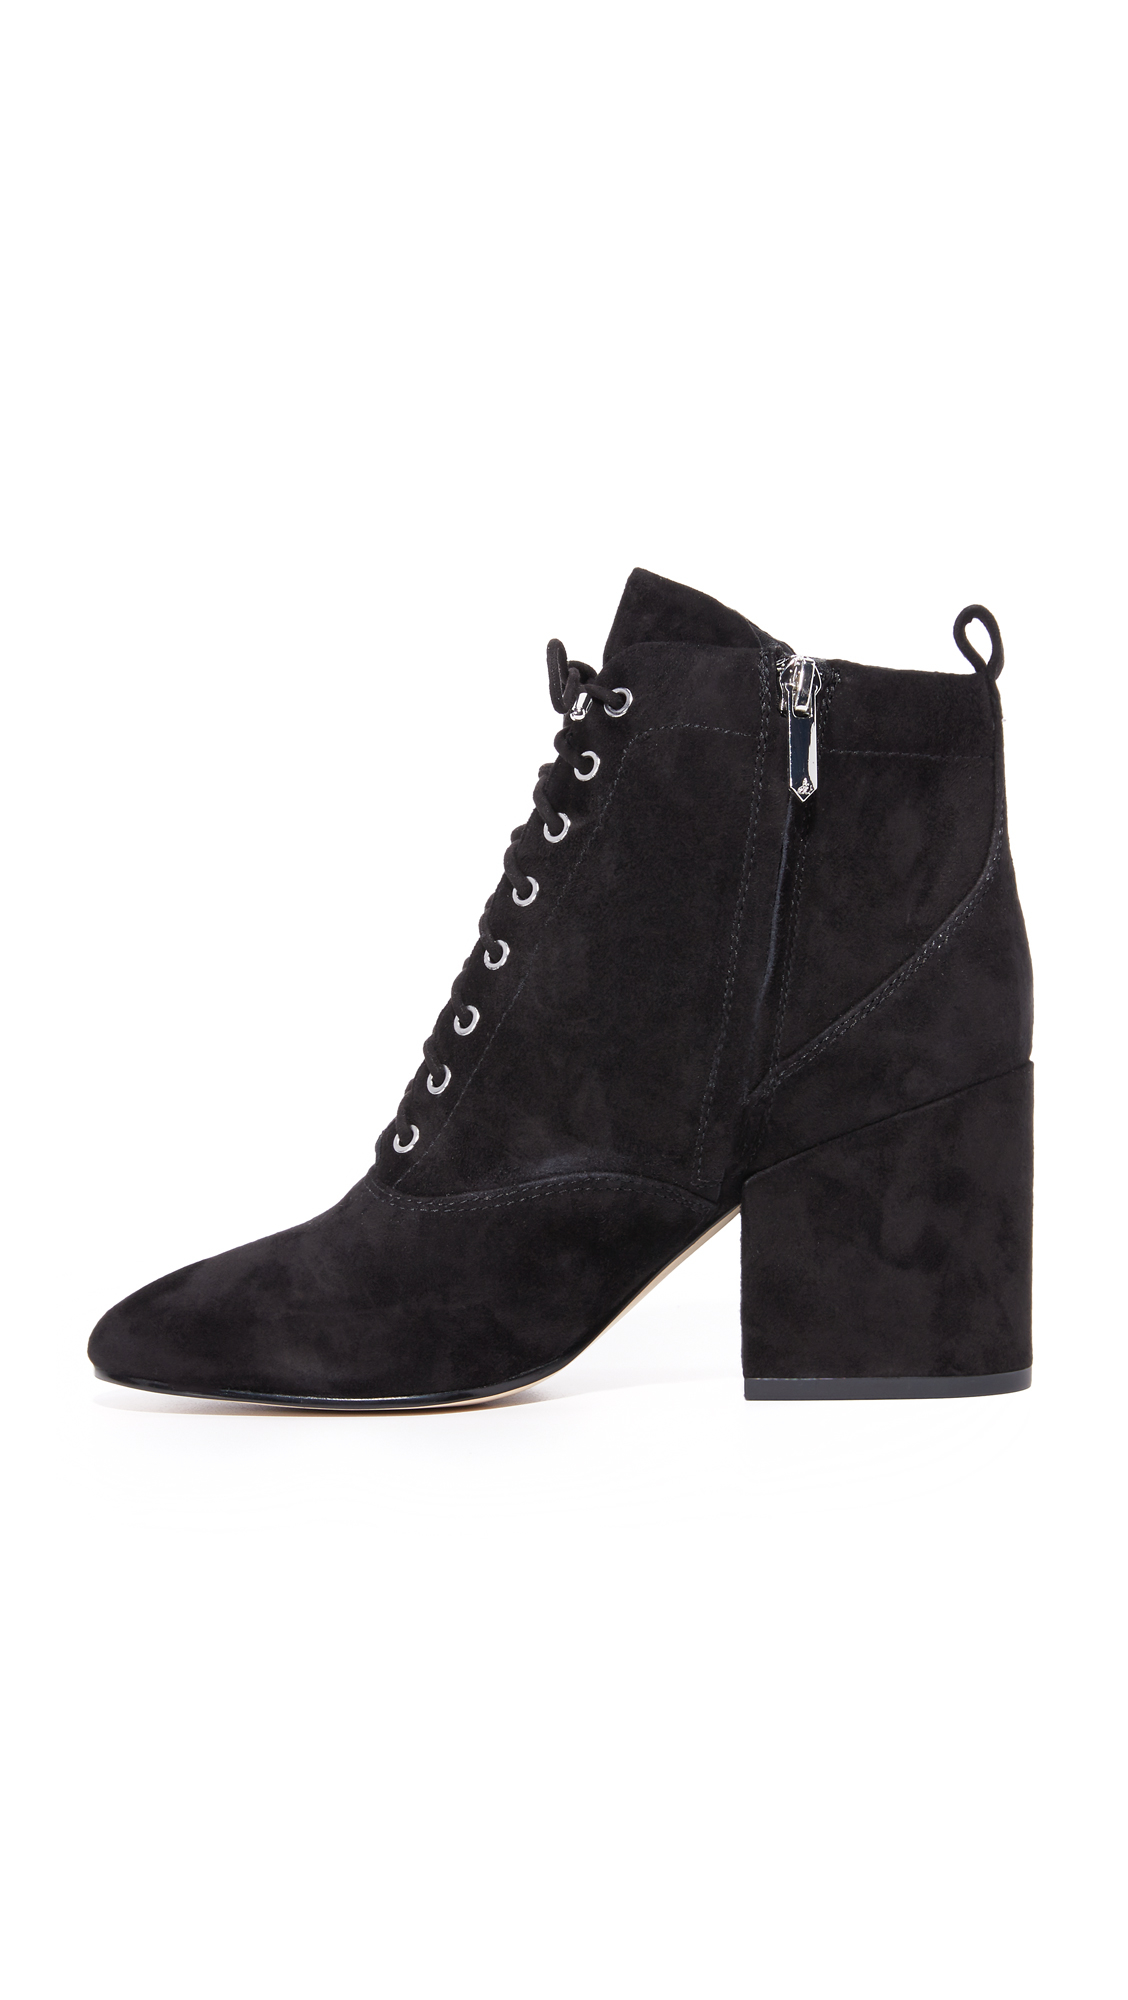 Sam Edelman Suede Tate Lace Up Booties in Black